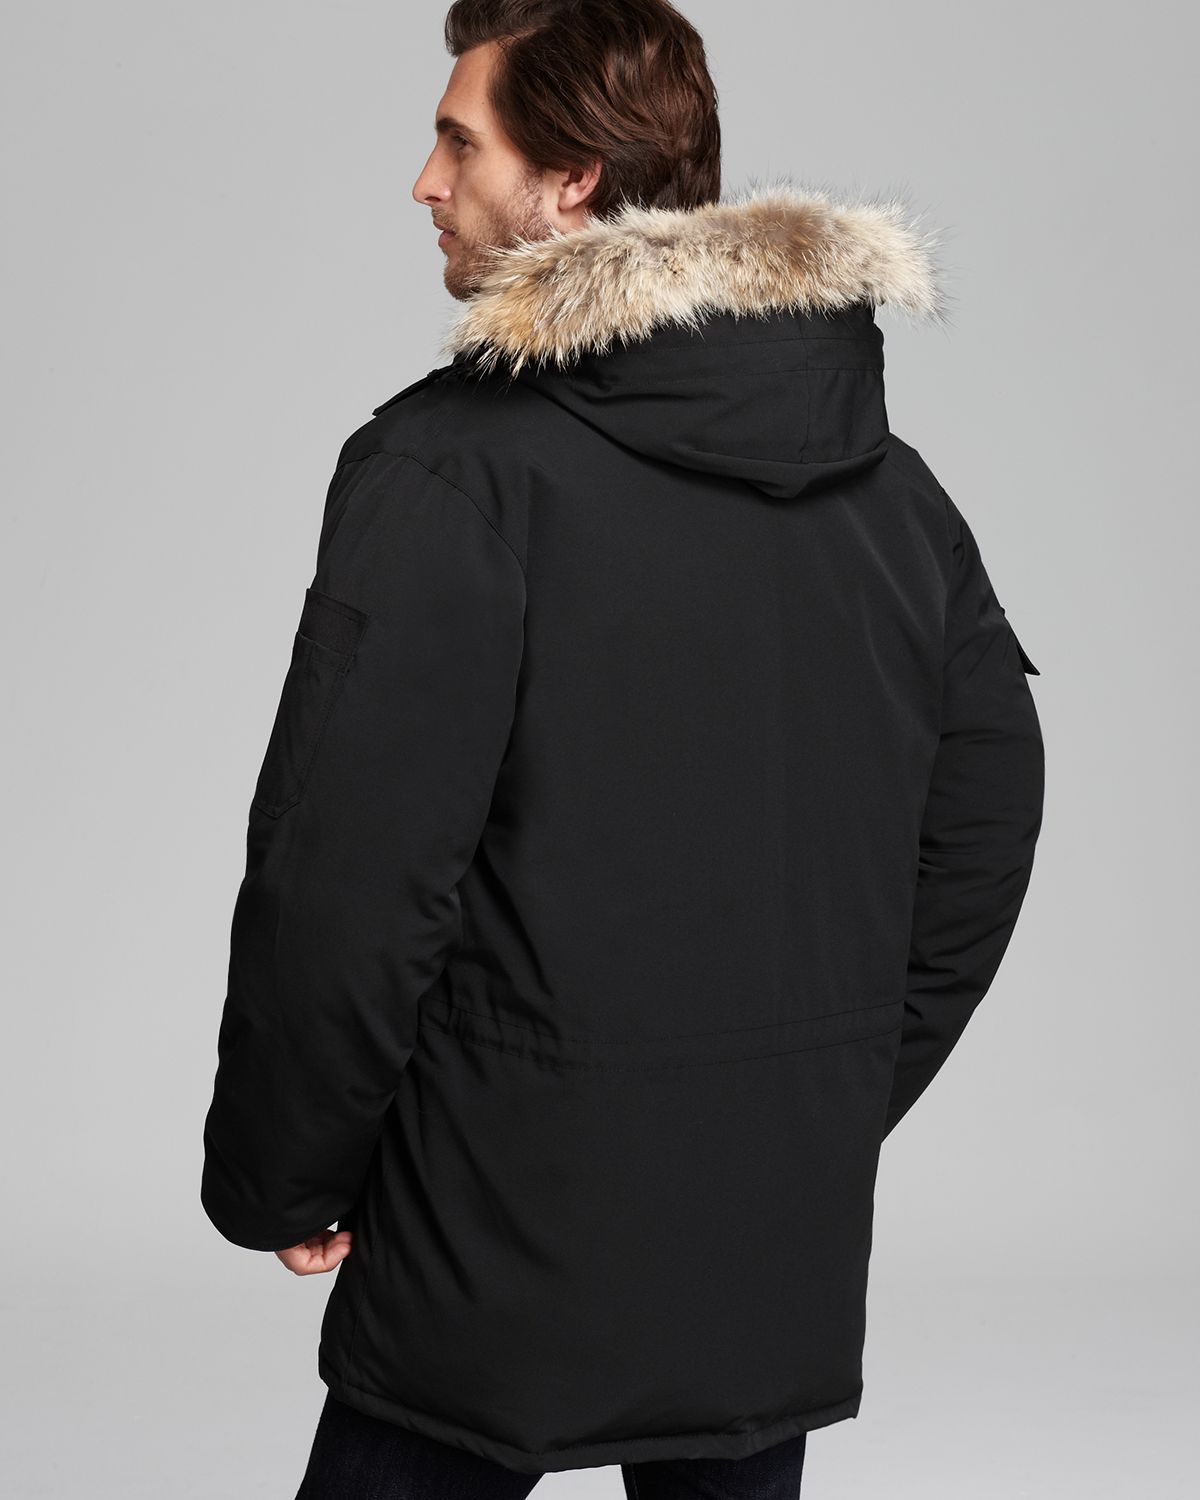 Canada Goose parka online cheap - Canada goose Expedition Down Parka in Black for Men | Lyst